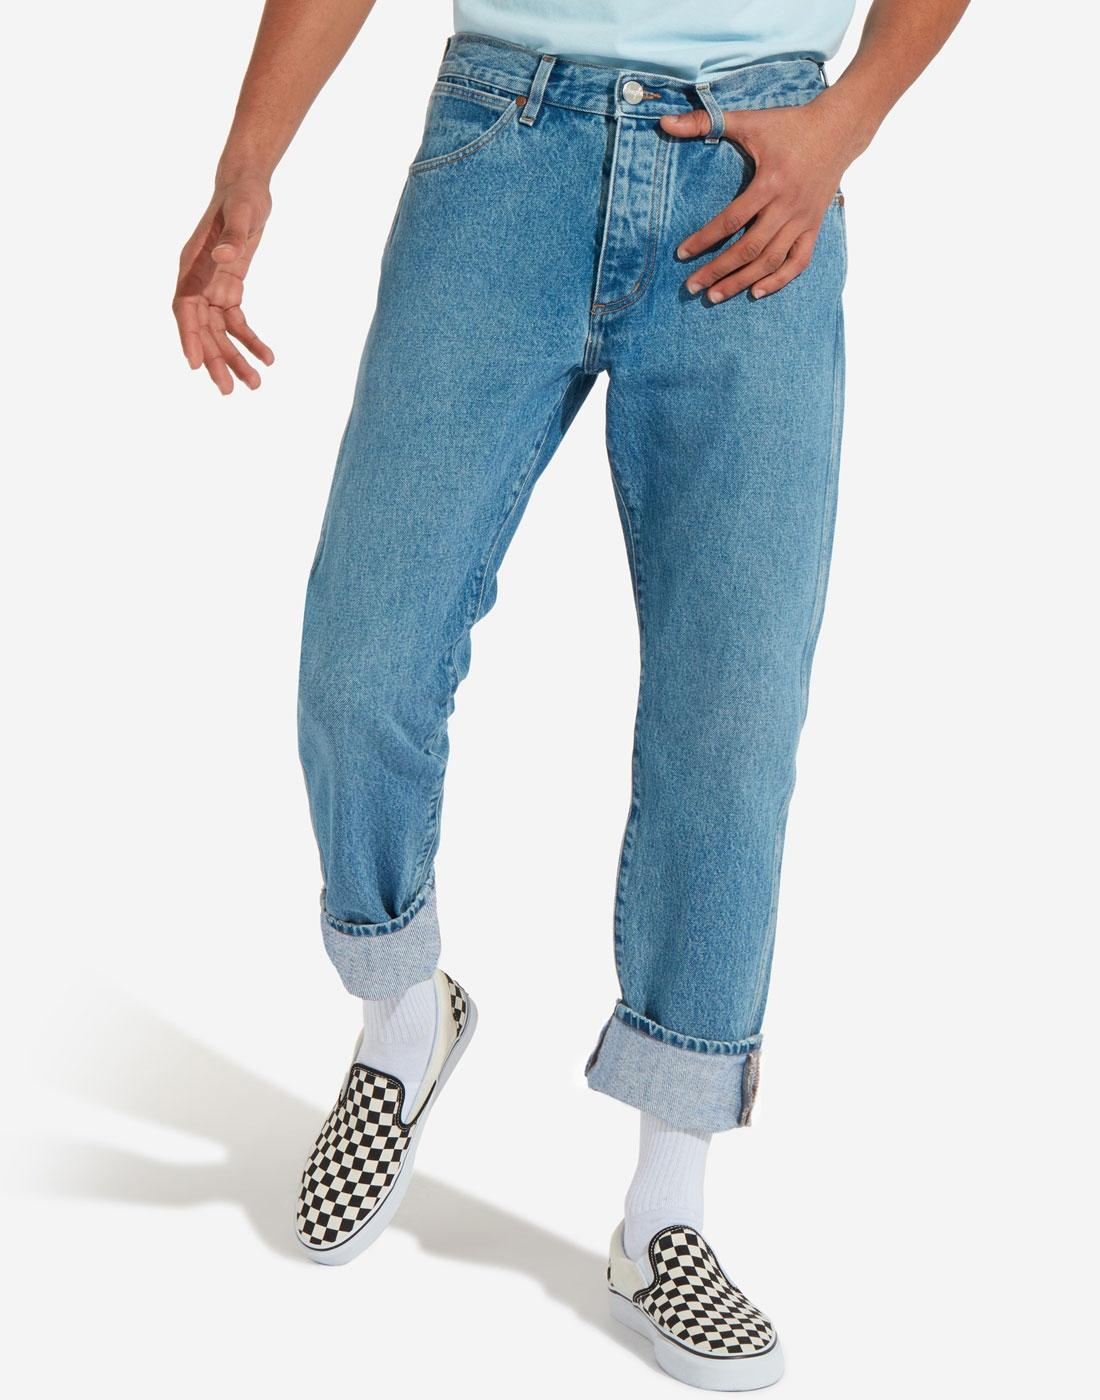 Slider WRANGLER Slider Regular Tapered Jeans (KB)